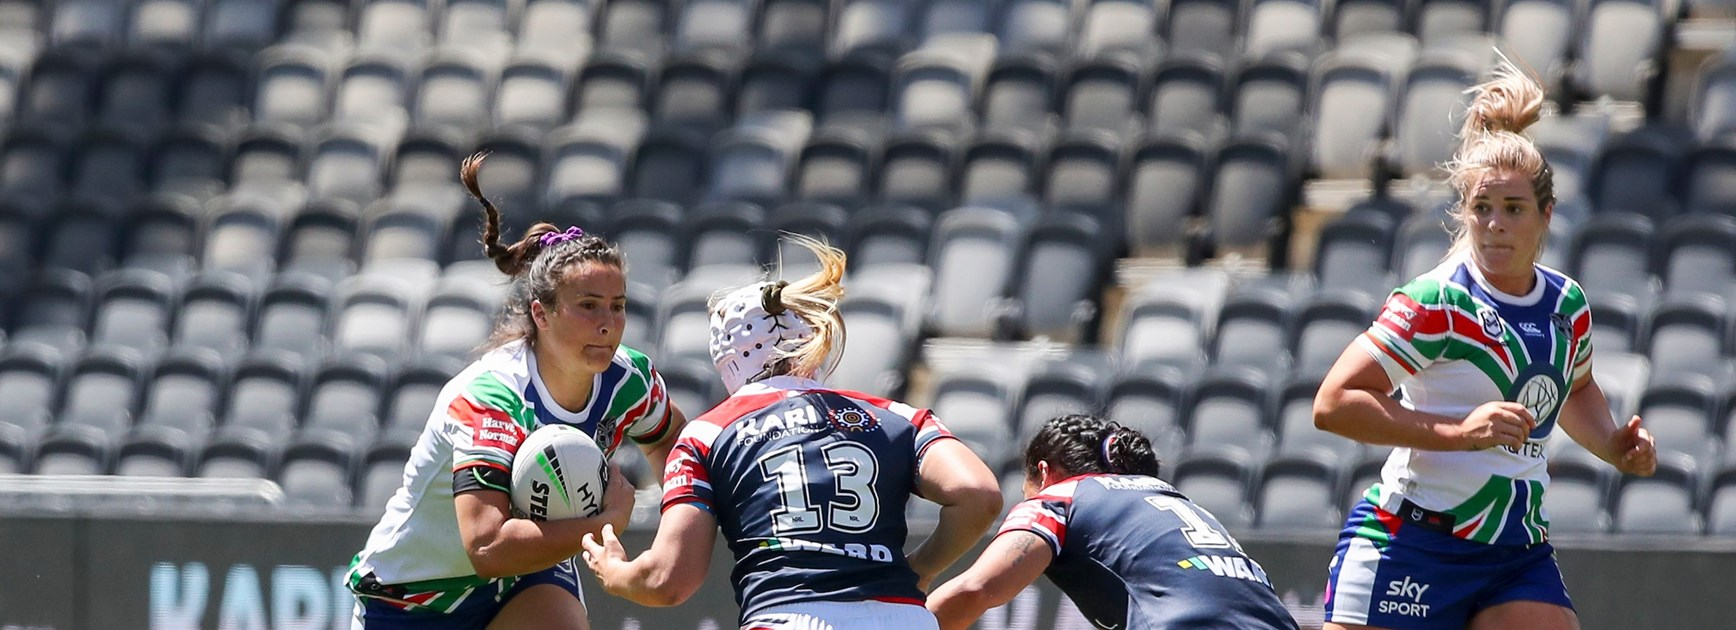 Defensive effort shows Roosters they're ready for Broncos